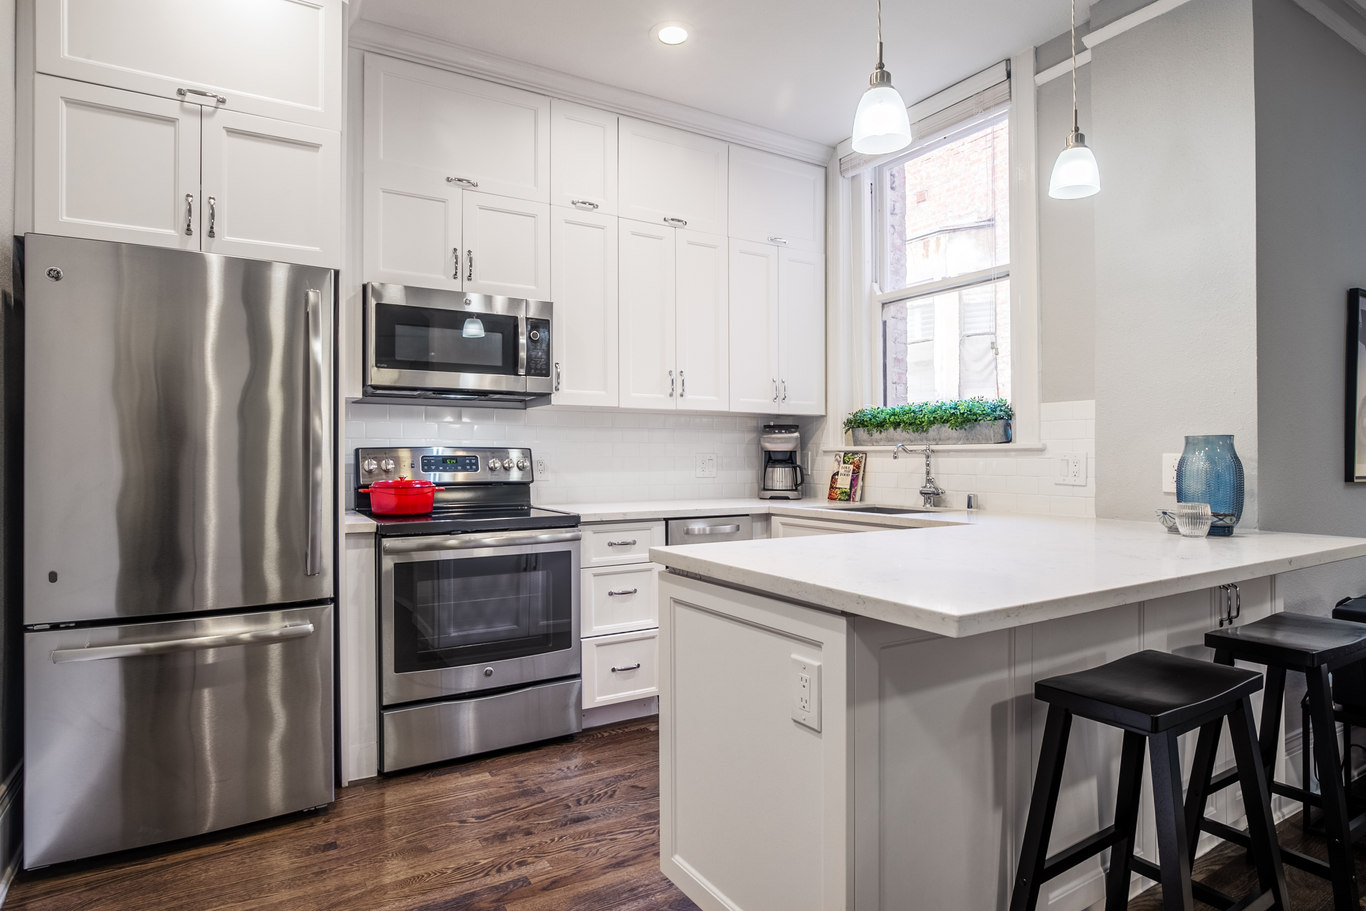 Kitchen at 952 Sutter Apartments